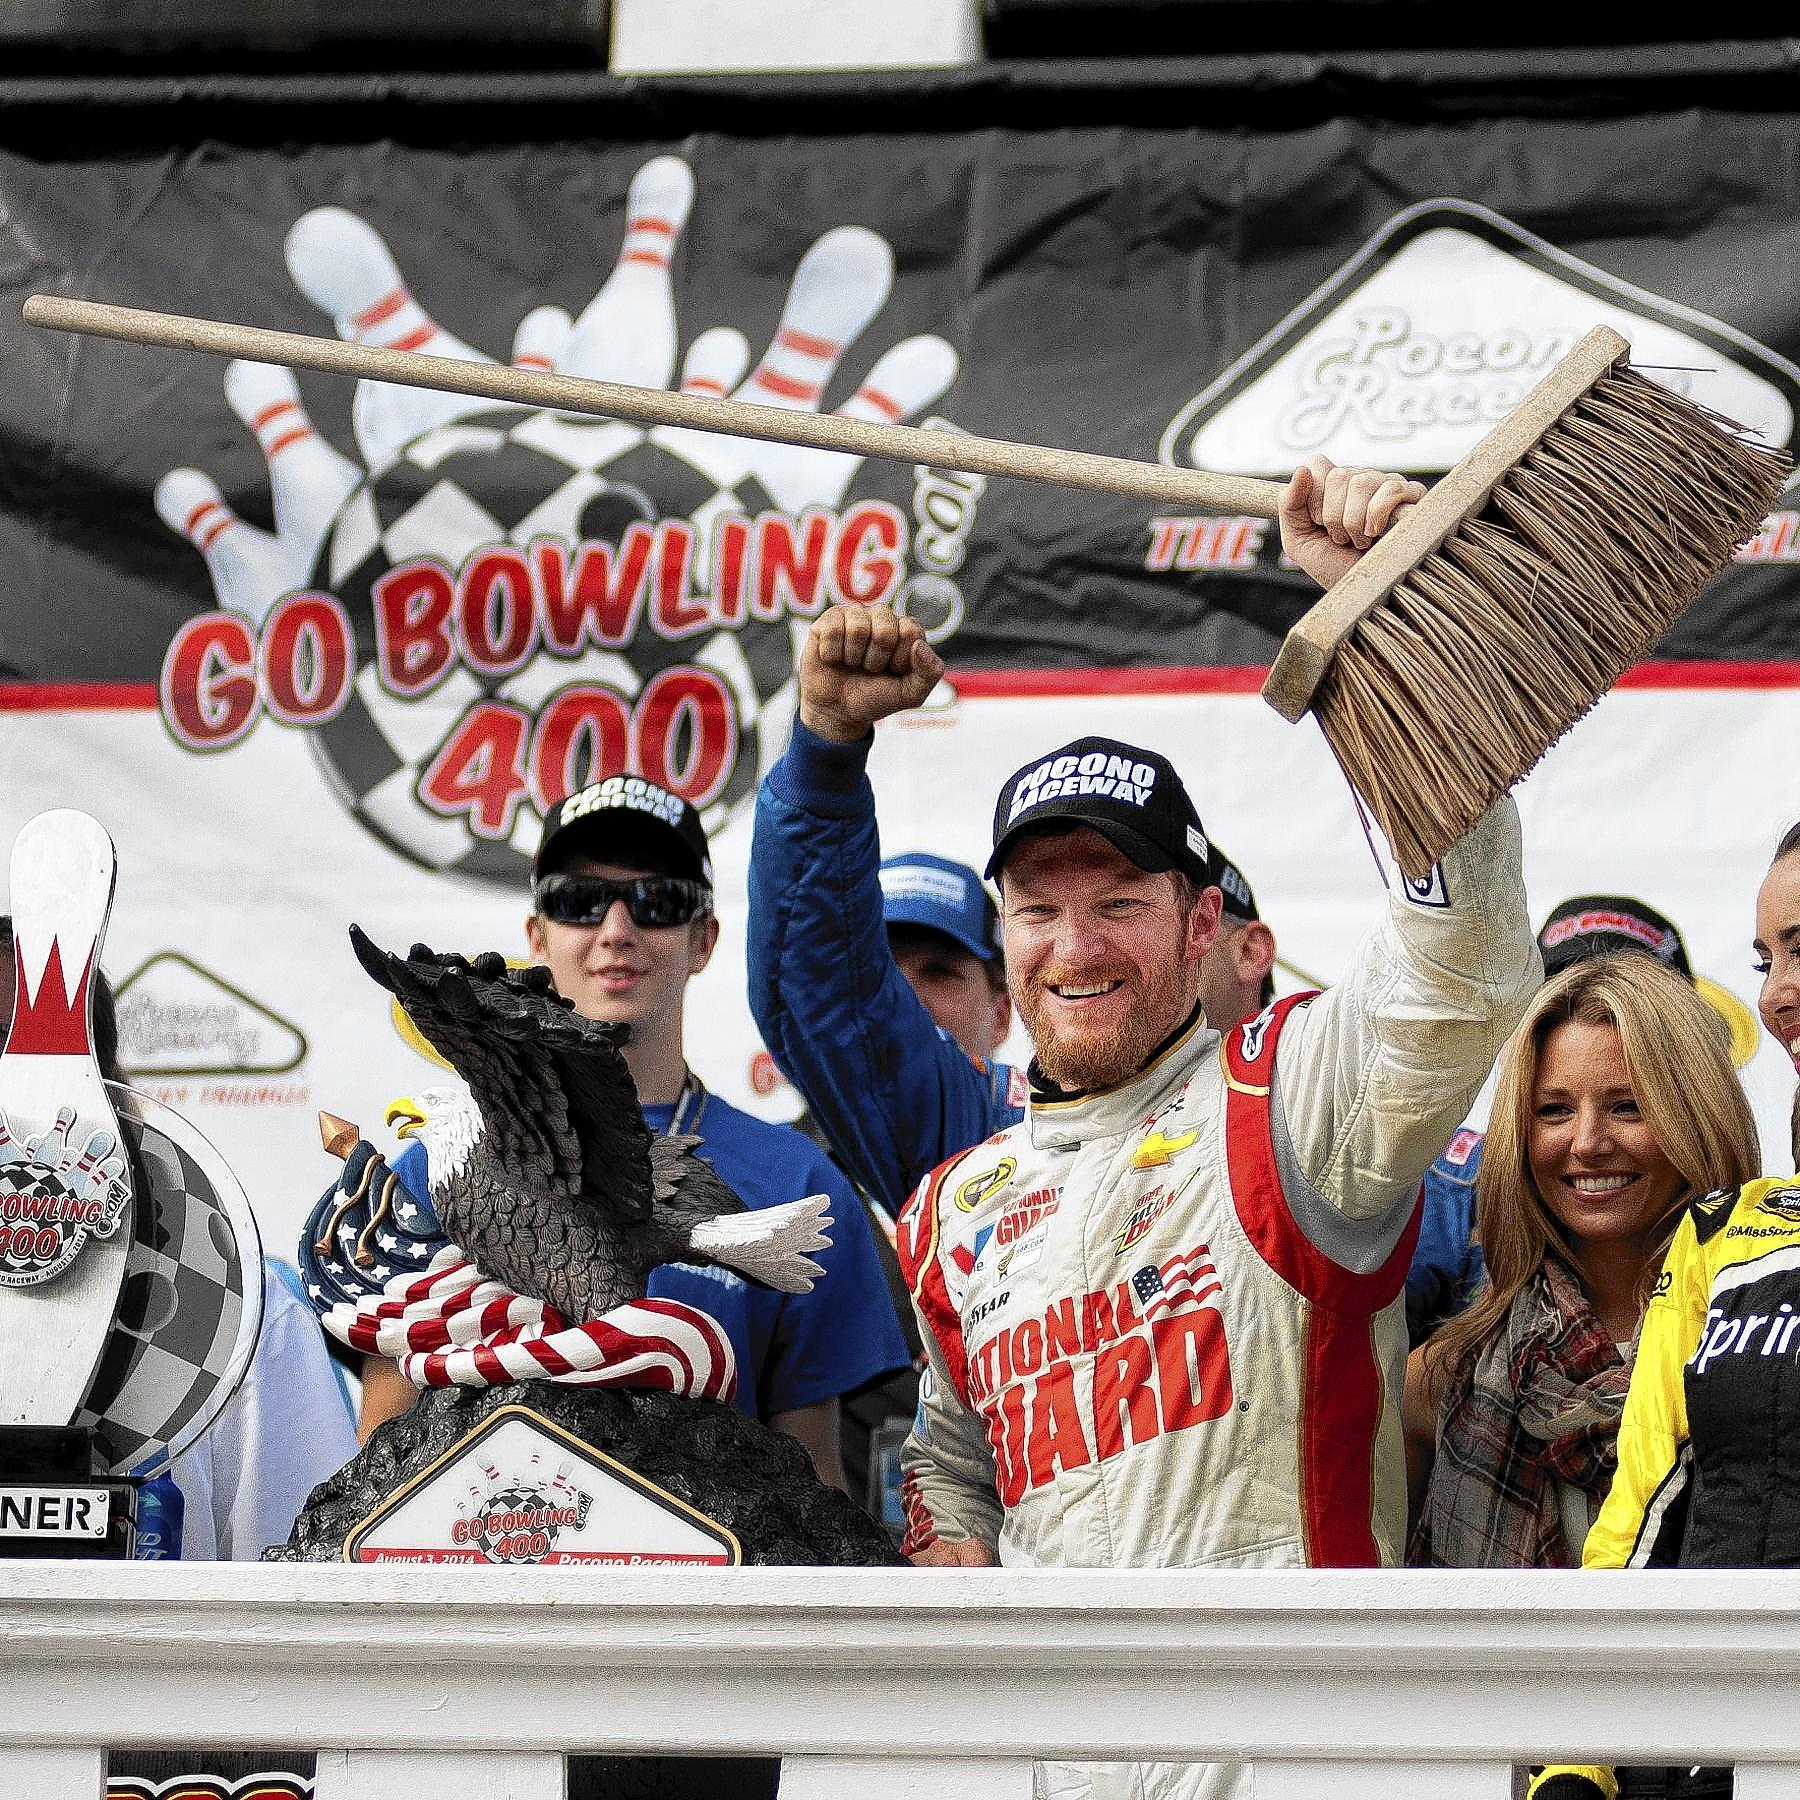 Dale Earnhardt Jr. celebrates a sweep at Pocono this year after his victory on Sunday at Pocono Raceway in Long Pond in the GoBowling.com 400.